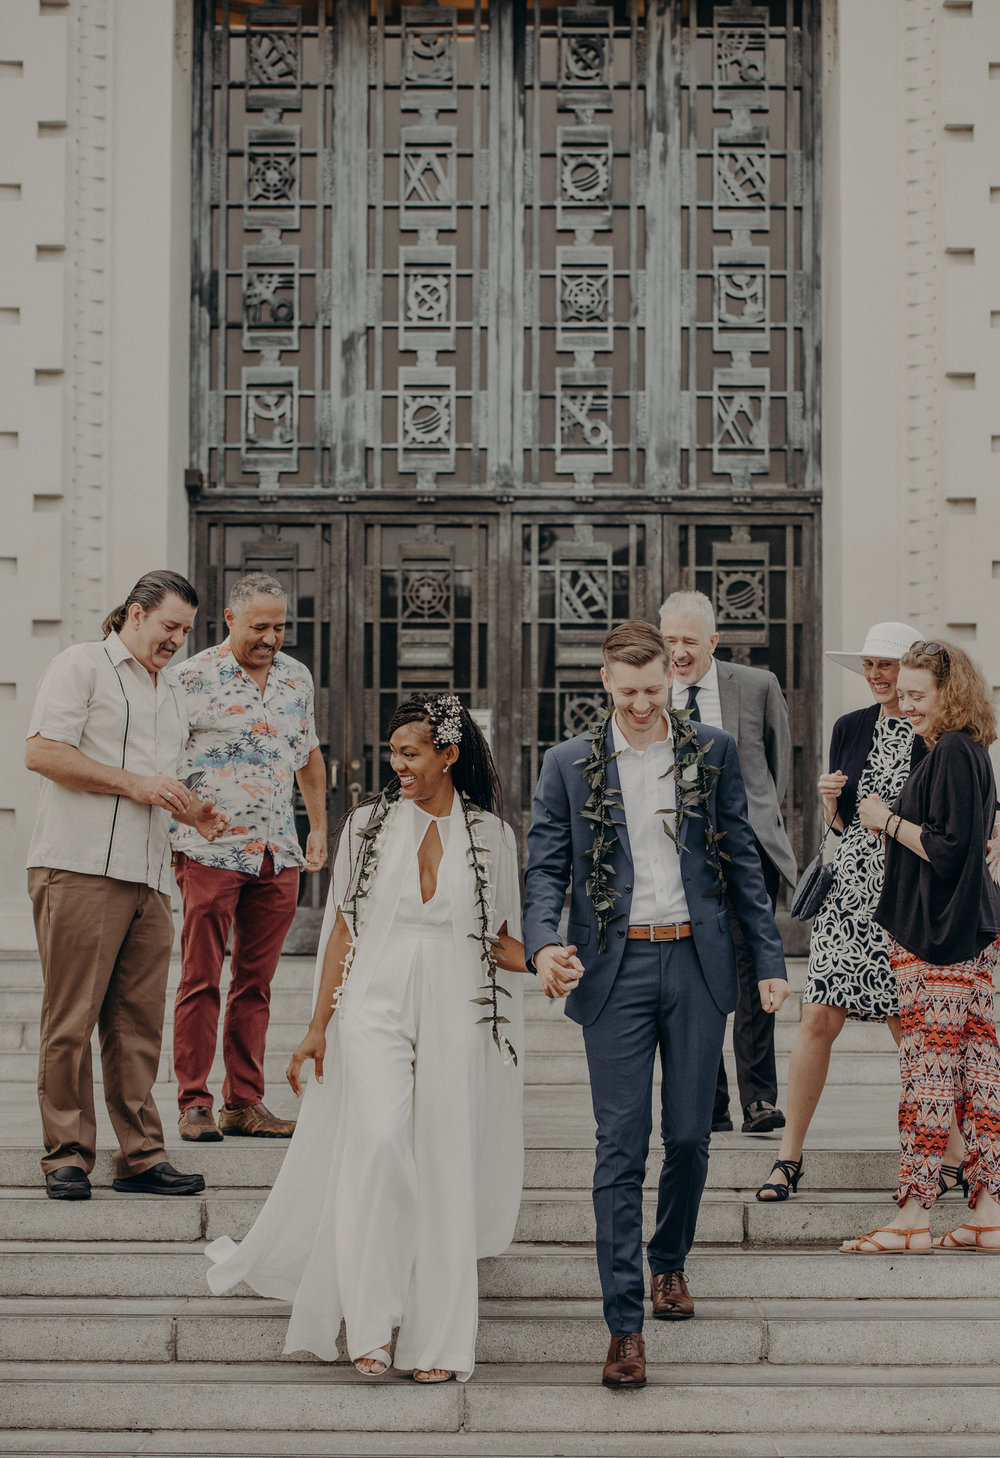 Los Angeles Wedding Photographer - Griffith Observatory Elopement - Long Beach wedding photo - IsaiahAndTaylor.com-035.jpg